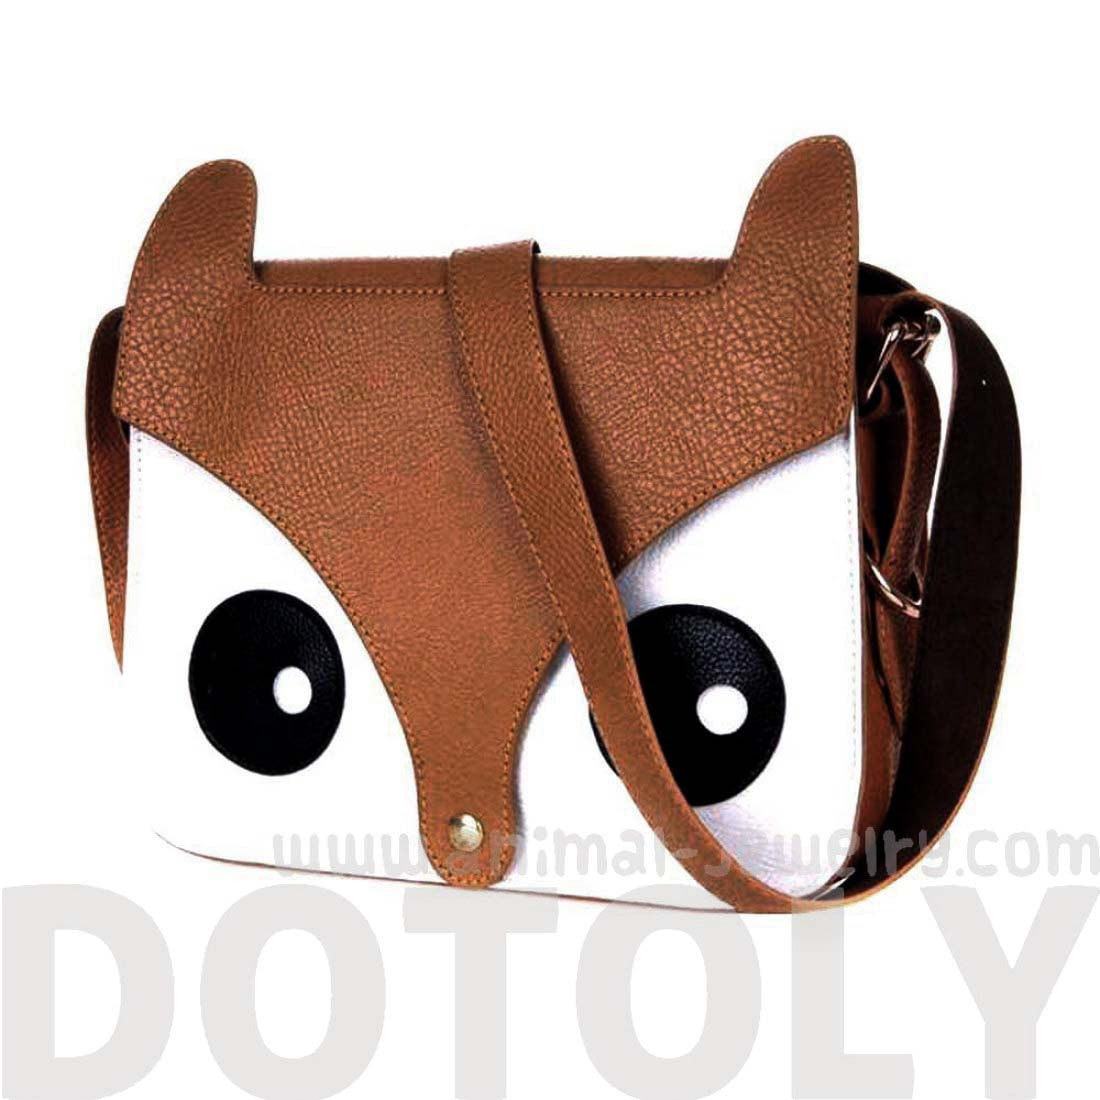 Owl Fox Face Shaped Animal Themed Cross Body Shoulder Bag in Brown